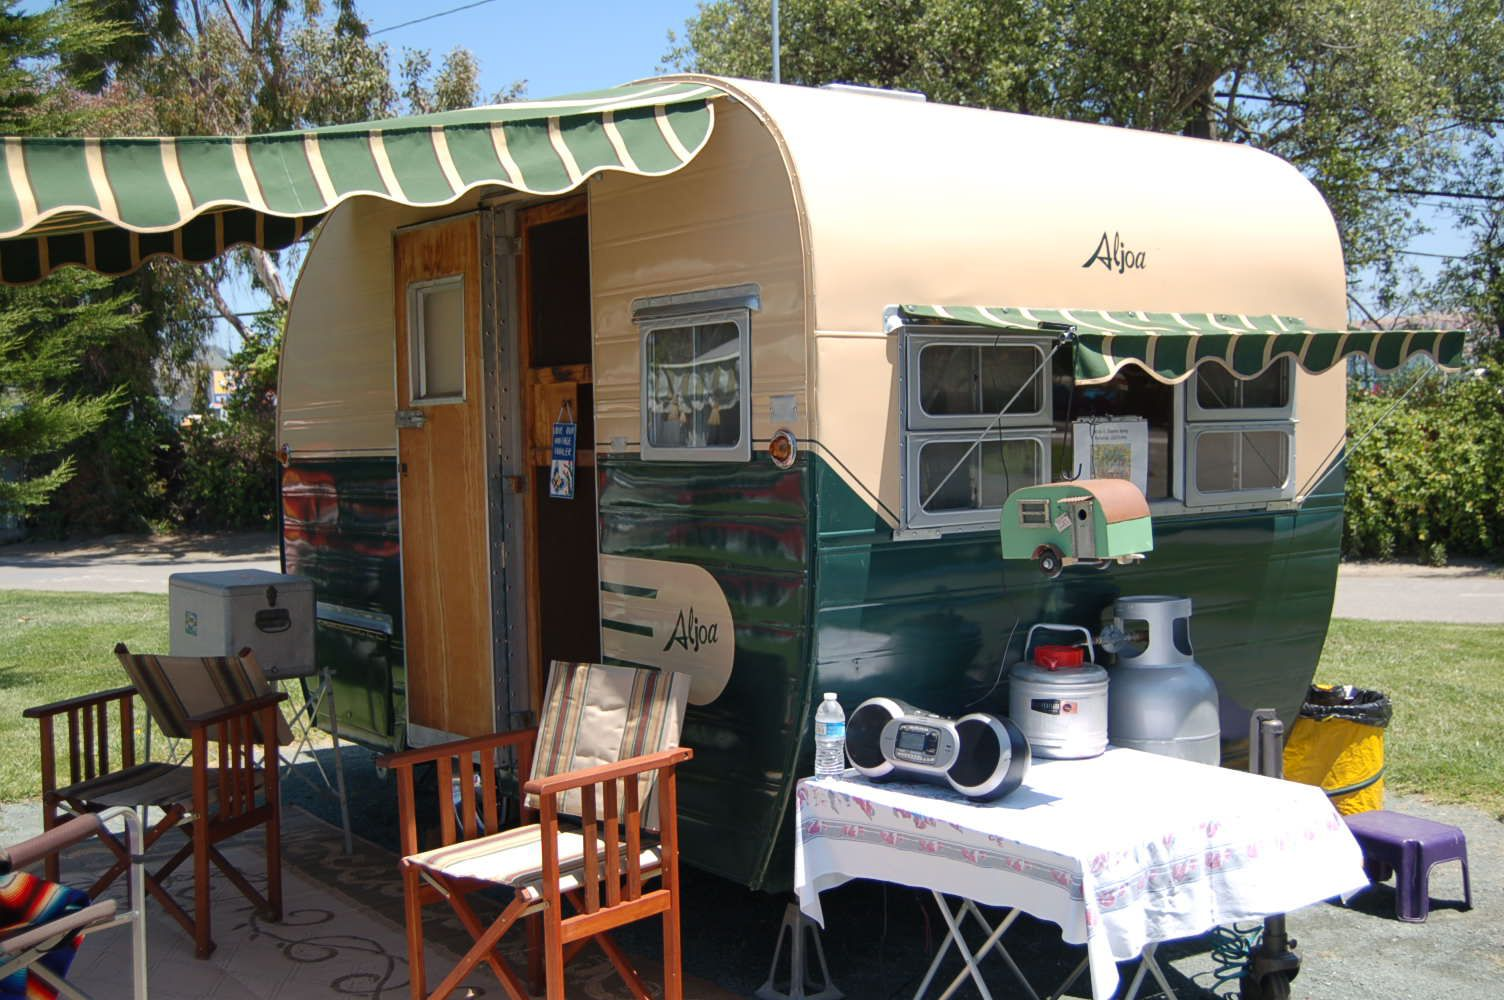 Restored Vintage 1955 Aljoa Travel Trailer Painted Green And White With Striped Awnings